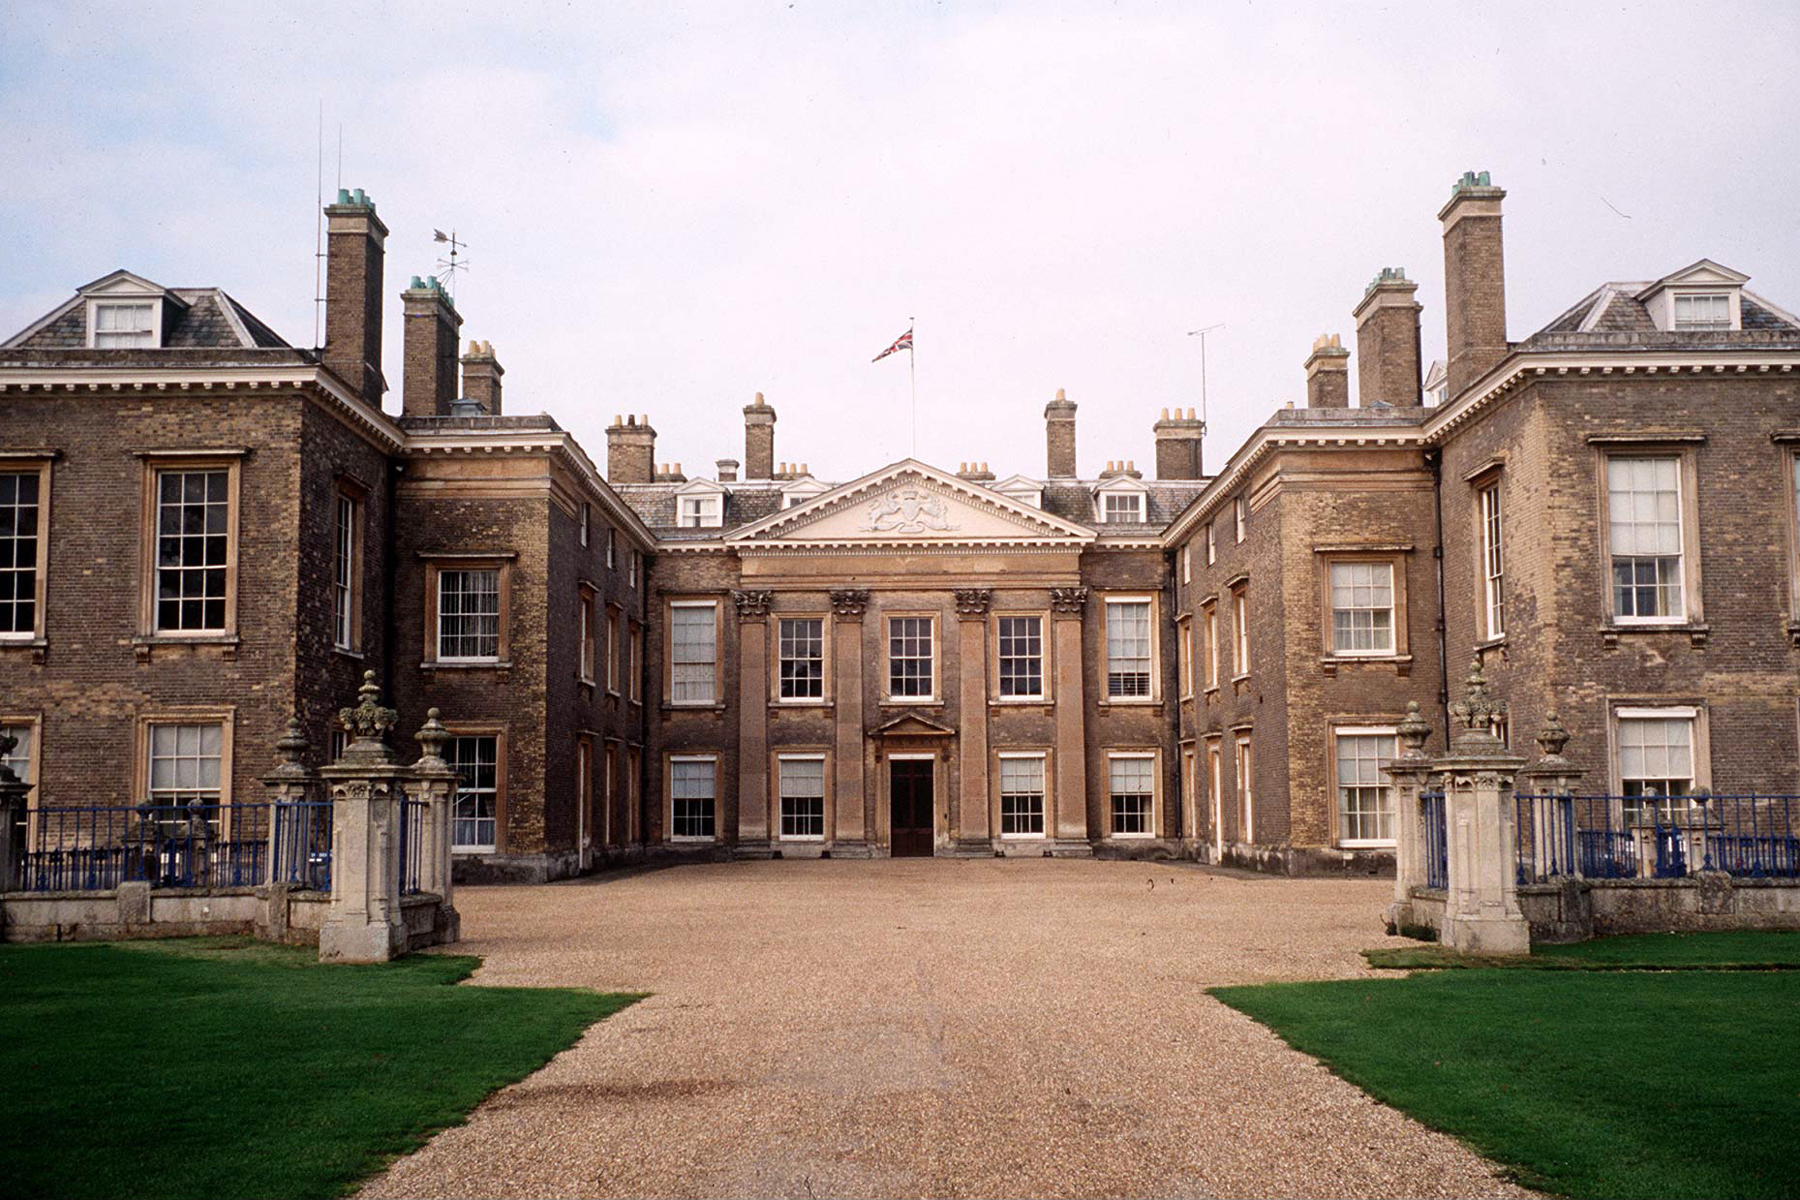 Althorp House In Northamptonshire, The Spencer Family Home At The Time Of The Announcement Of The Wedding Of Lady Diana Spencer